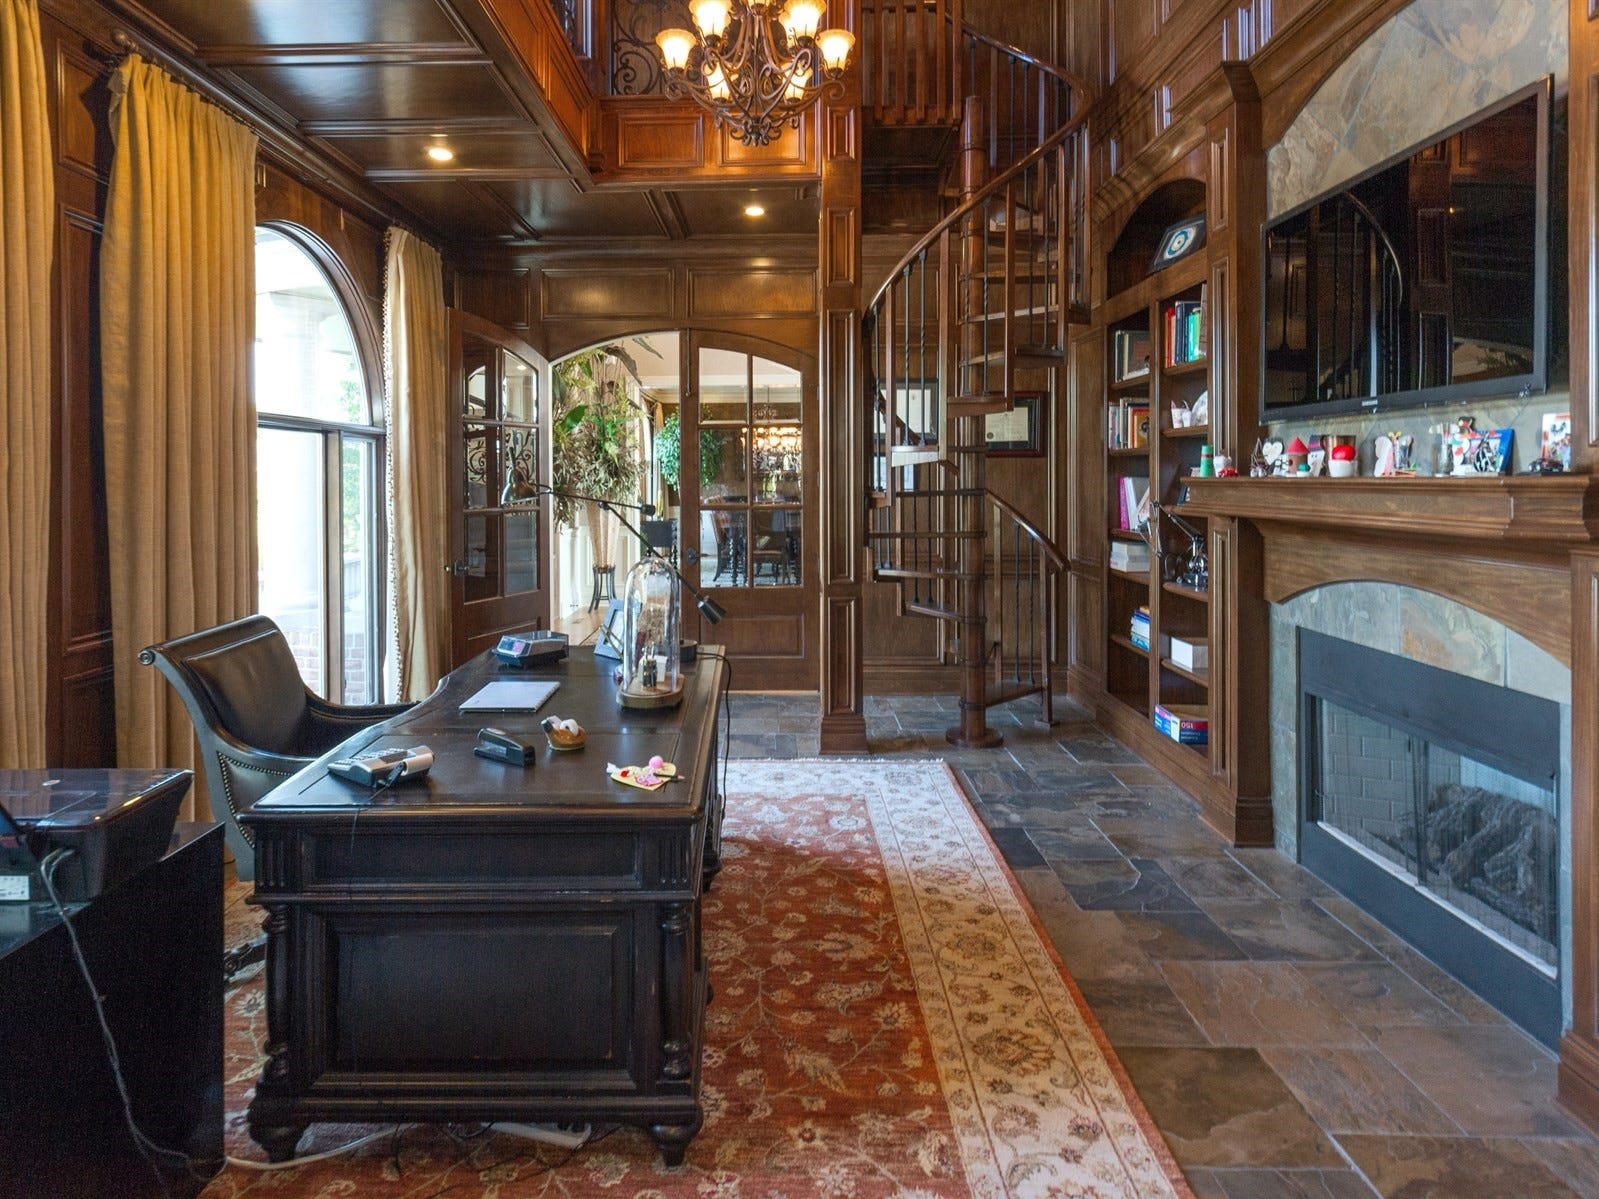 Office and two story library features a spiral staircase and fireplace